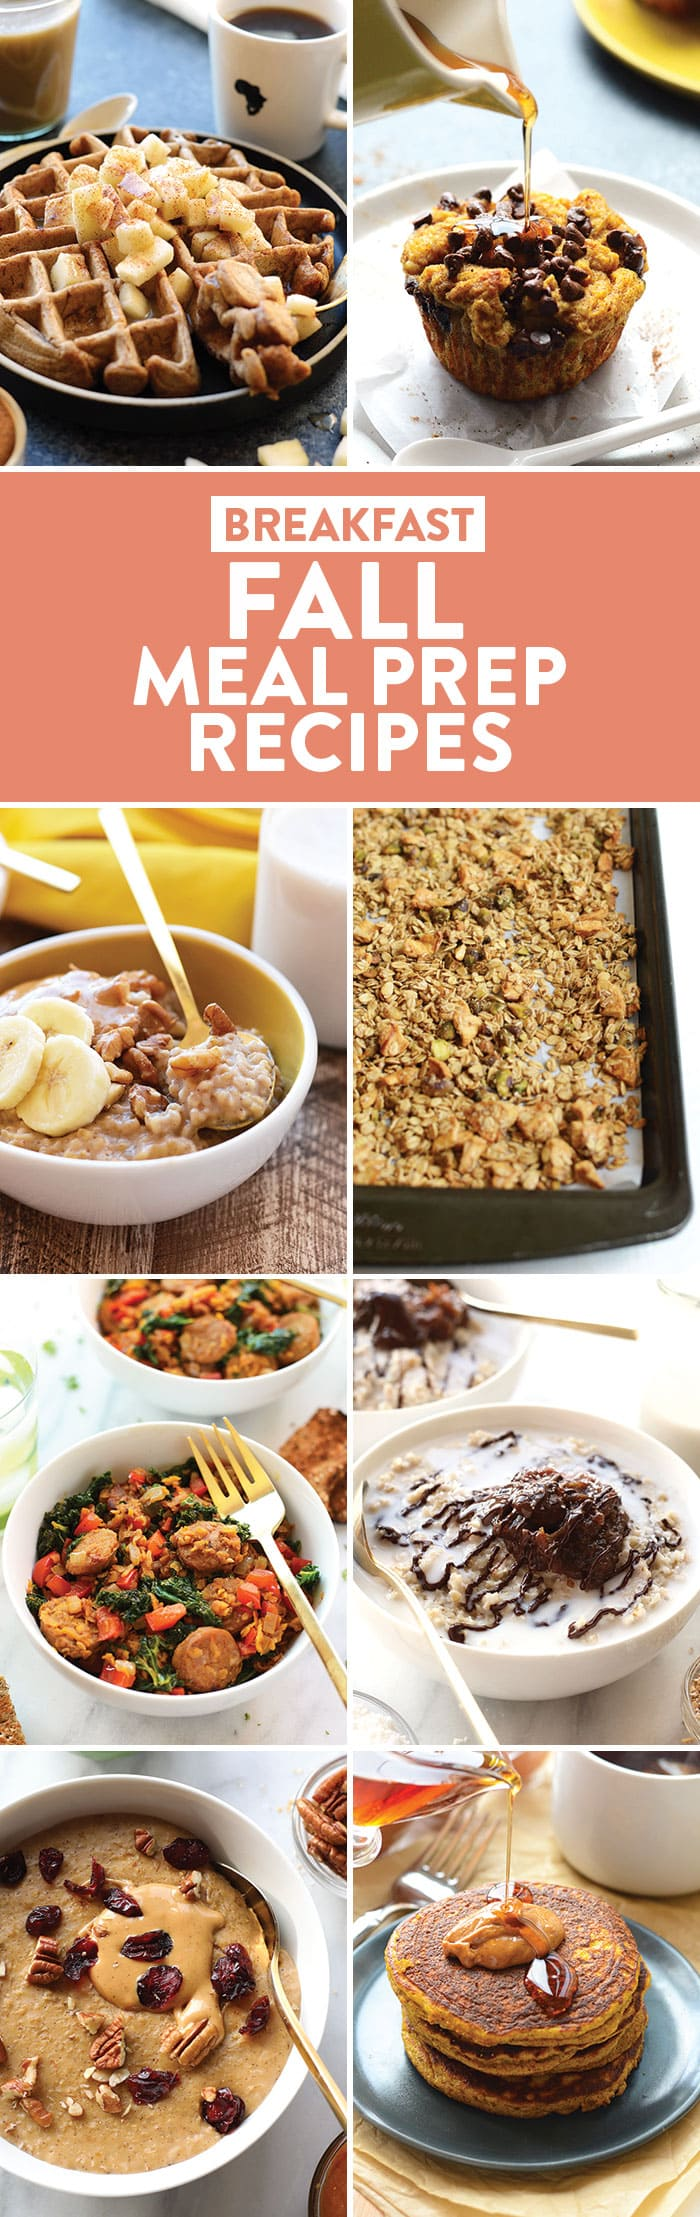 A photo collage of breakfast recipes